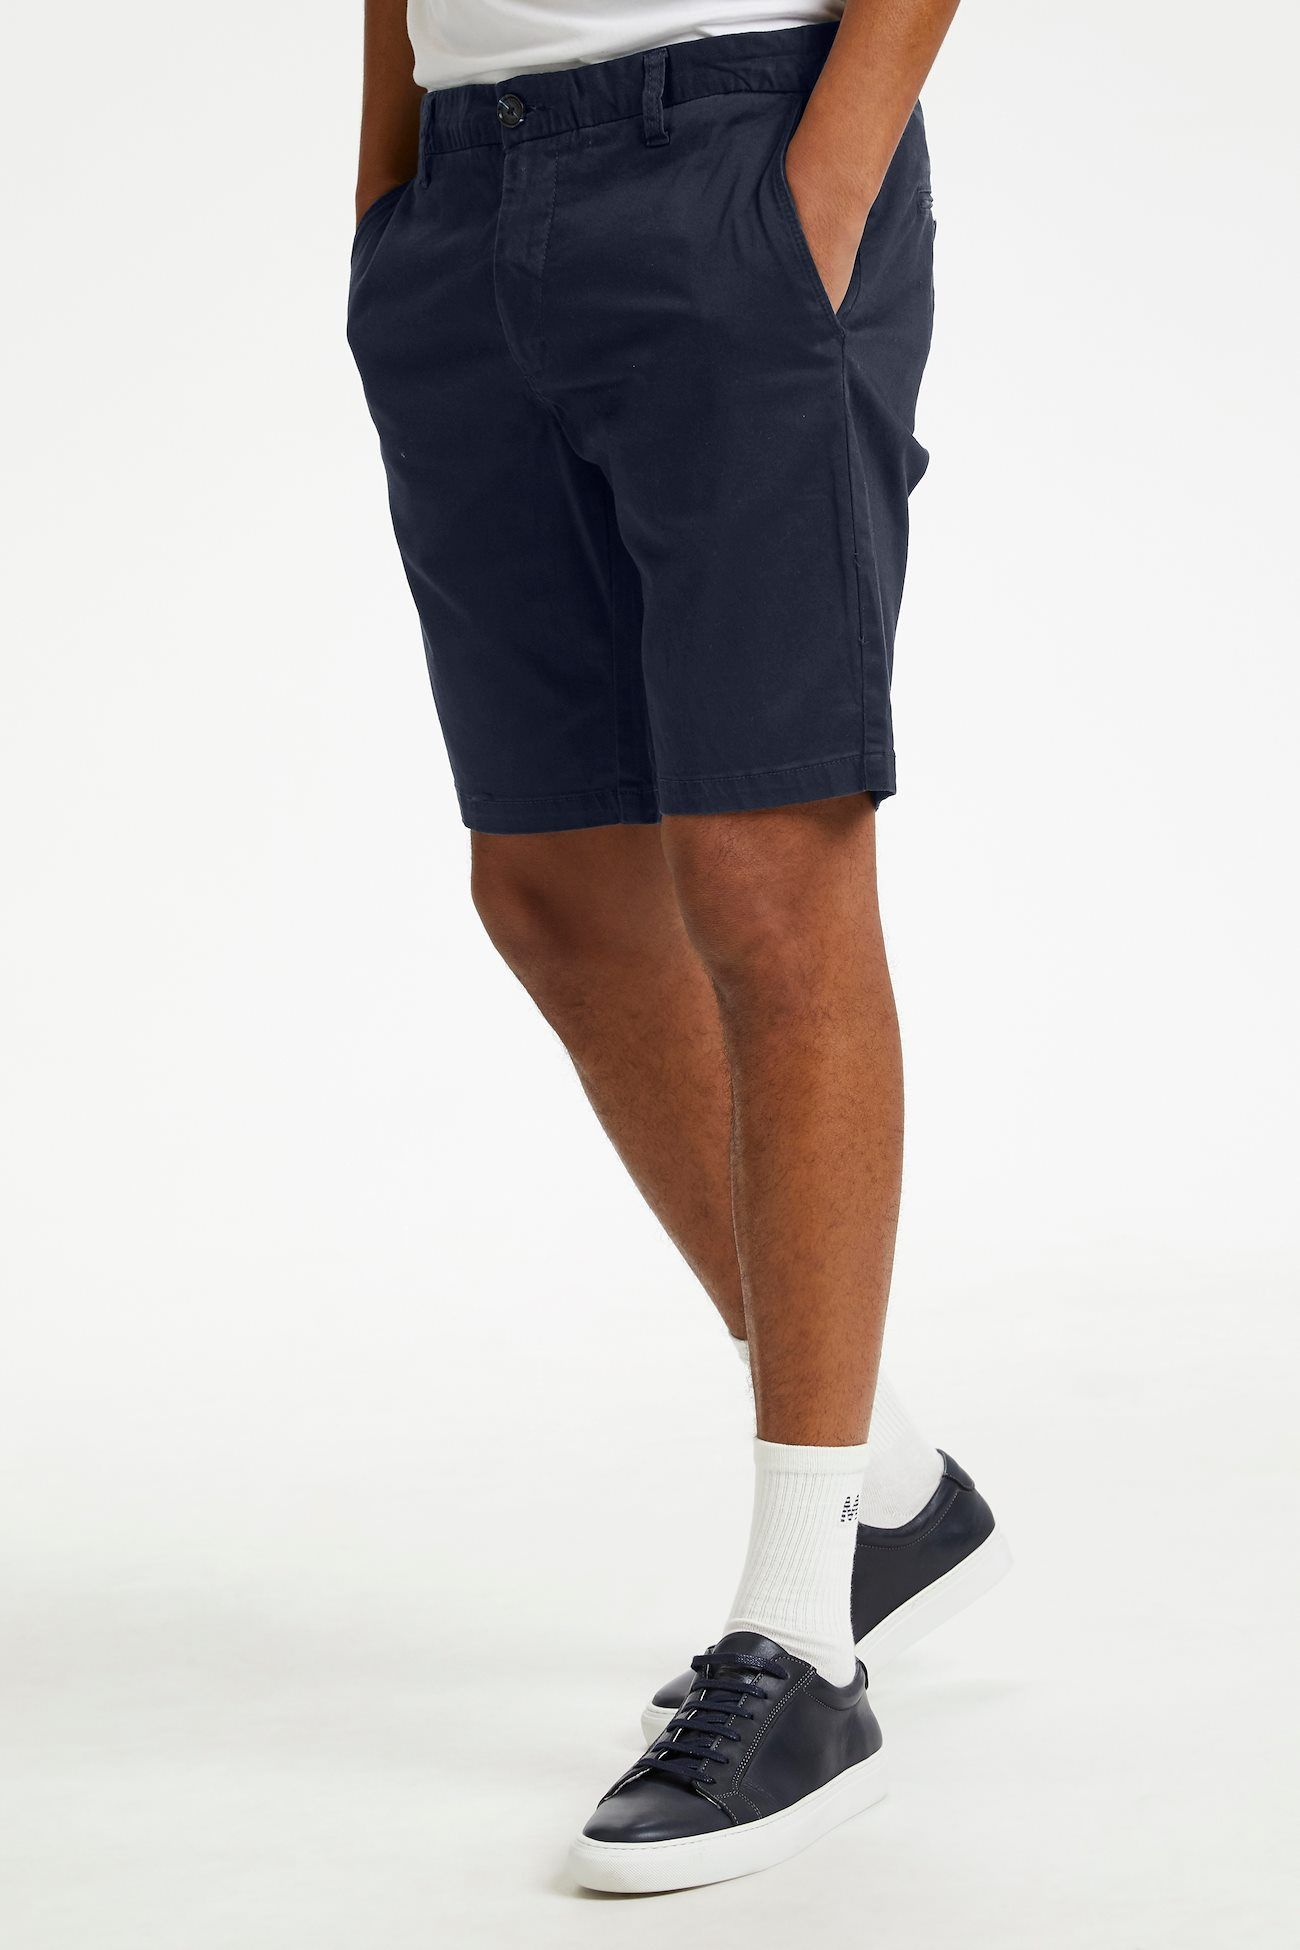 Pristu Dark Navy Tailored Shorts 40'